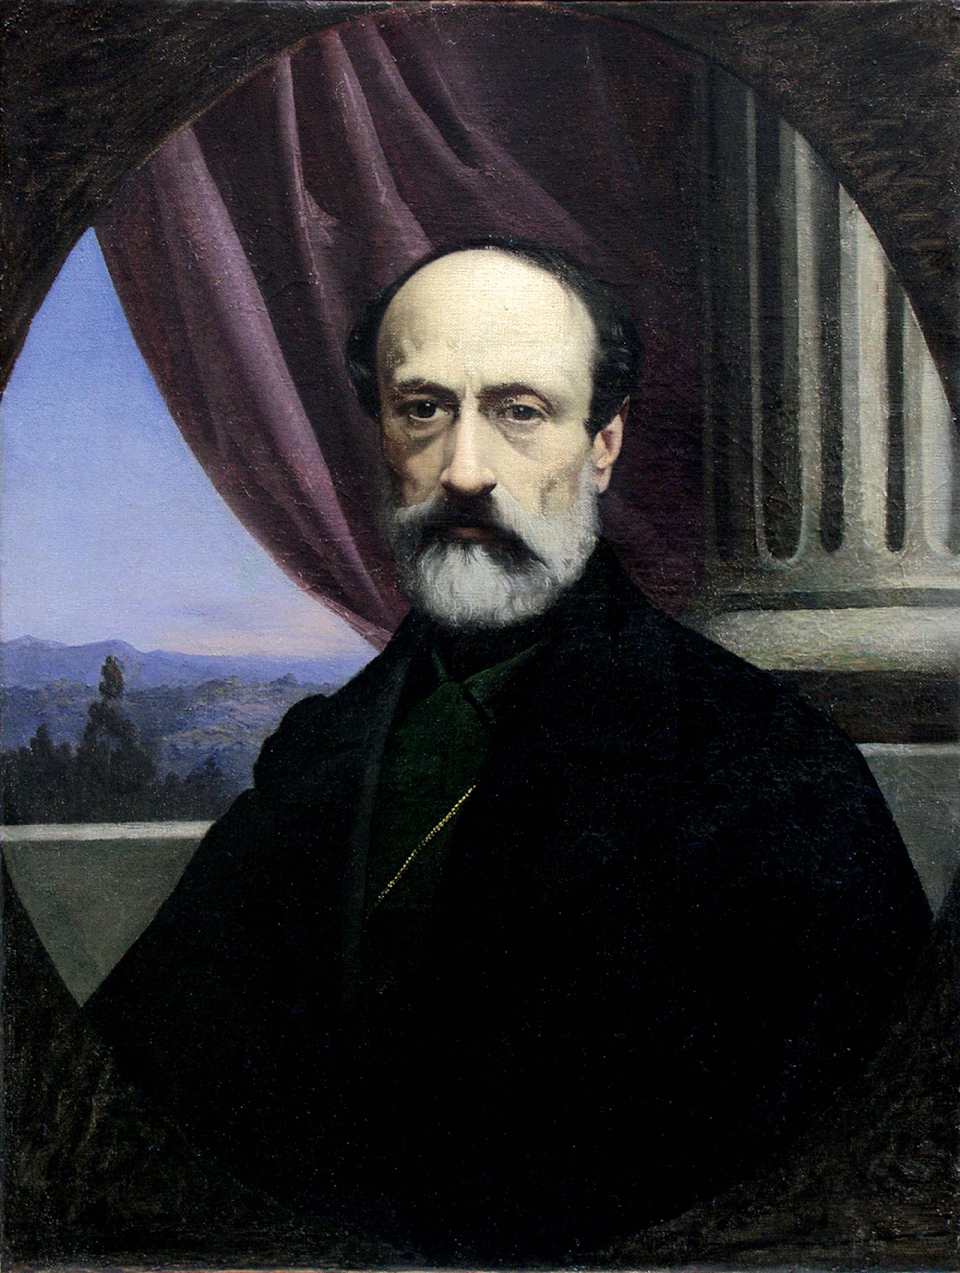 giuseppe mazzini essay on the duties of man Books by mazzini, giuseppe, the duties of man and other essays, the living thoughts of mazzini, life & writings of joseph mazzini, scritti scelti, scritti editi ed inediti, filosofia della musica, essays, the duties of man.